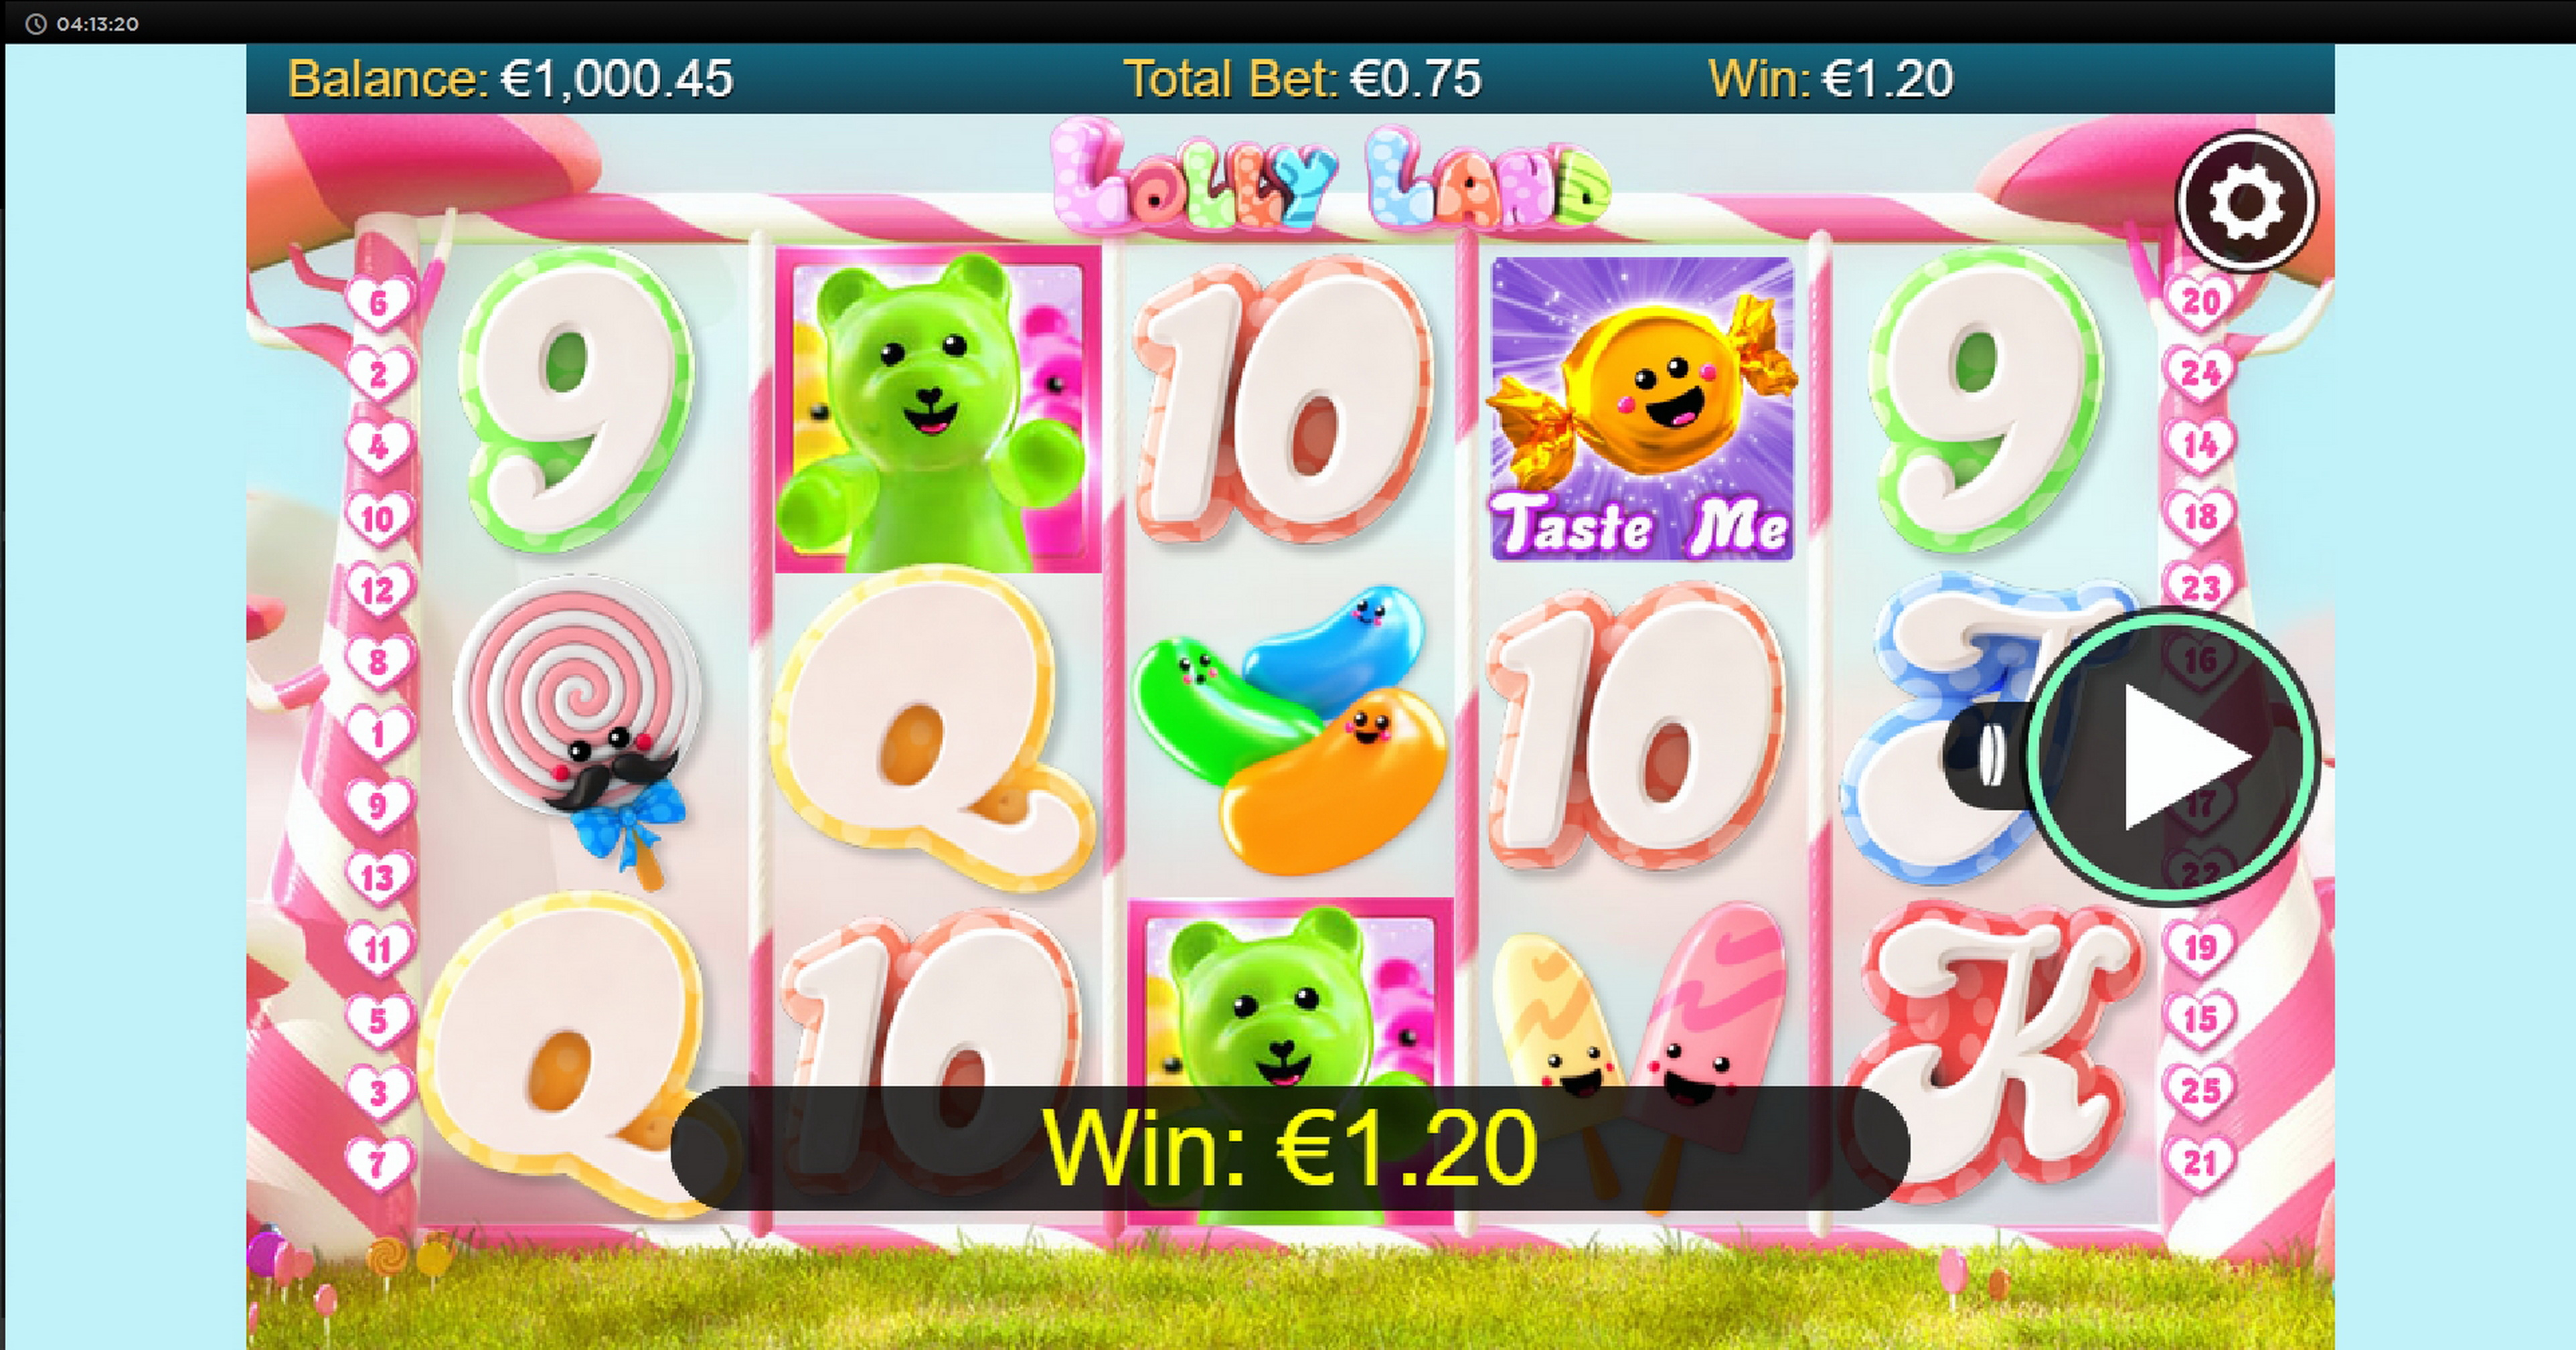 Win Money in Lolly Land Free Slot Game by Chance Interactive